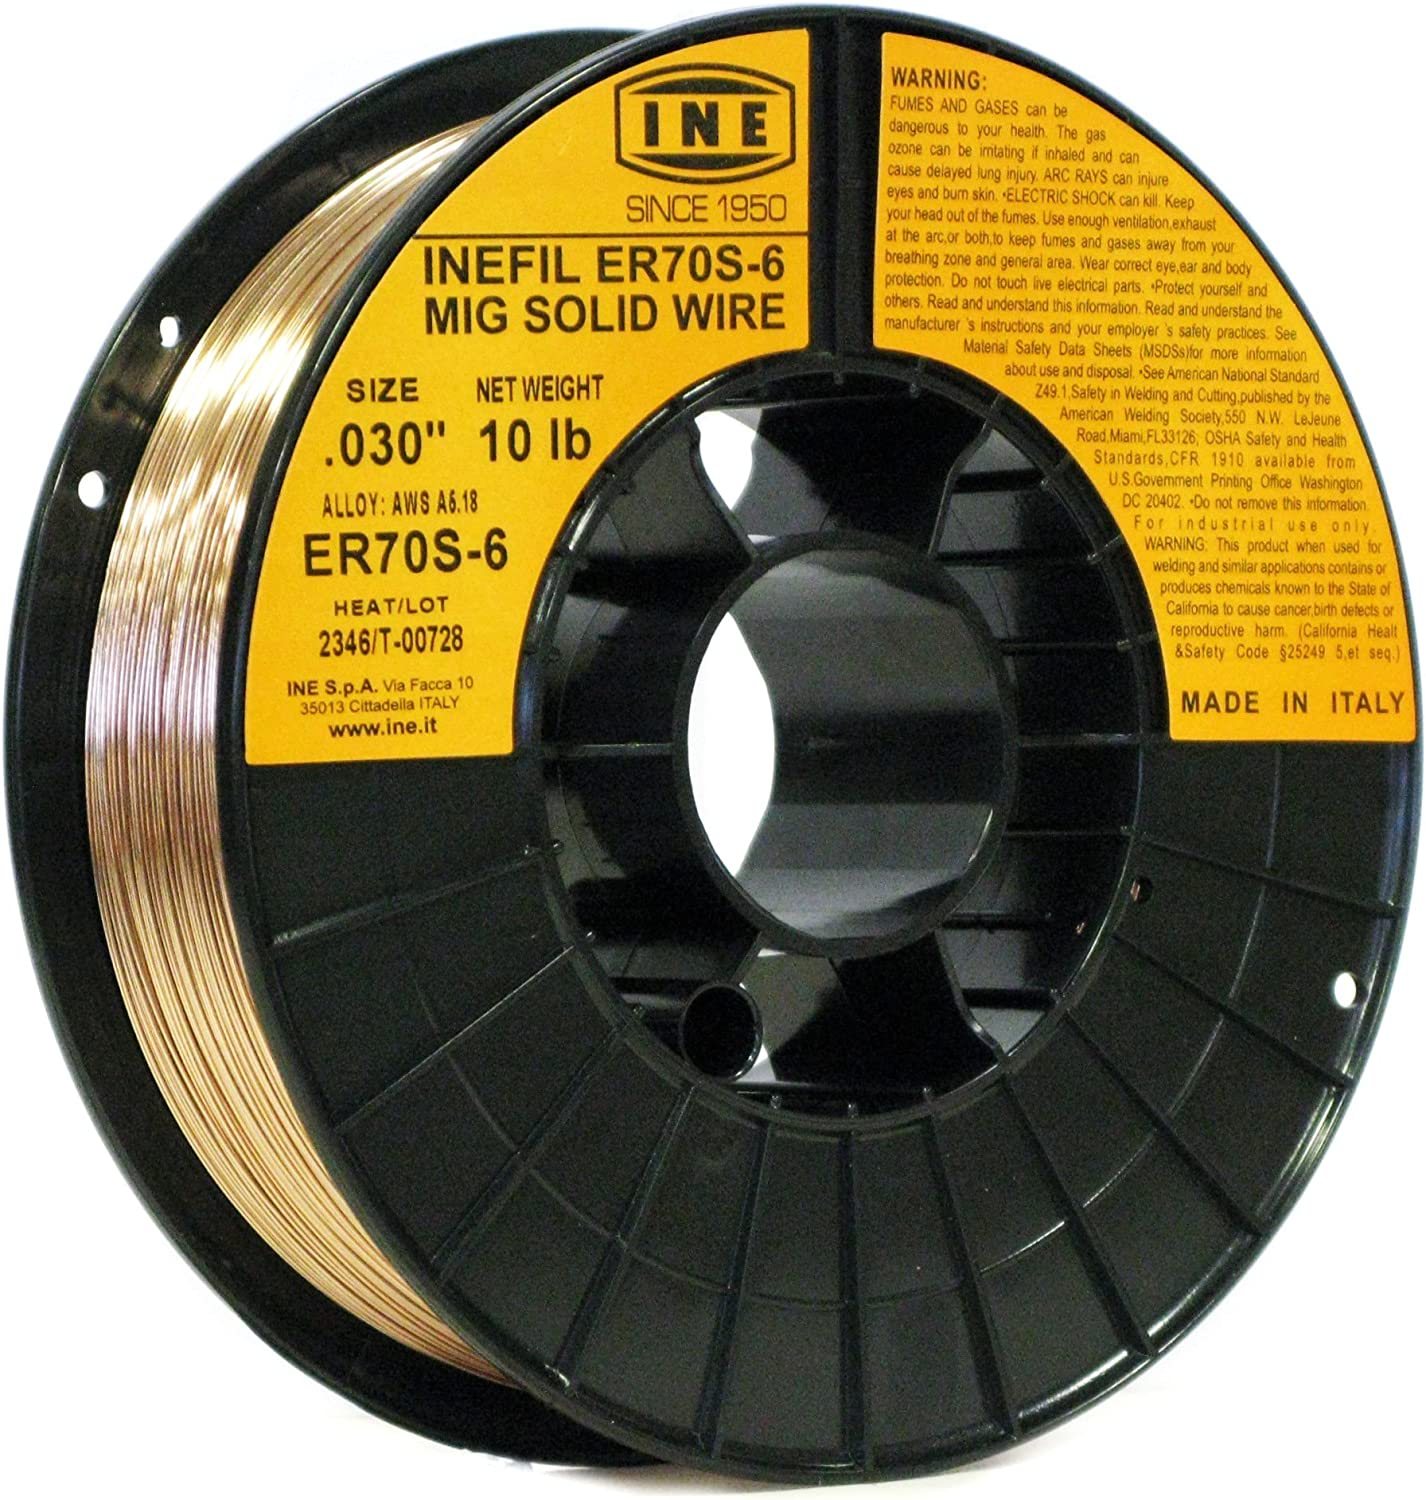 #2 Inefil ER70S-6 Carbon Steel Mig Solid Welding Wire